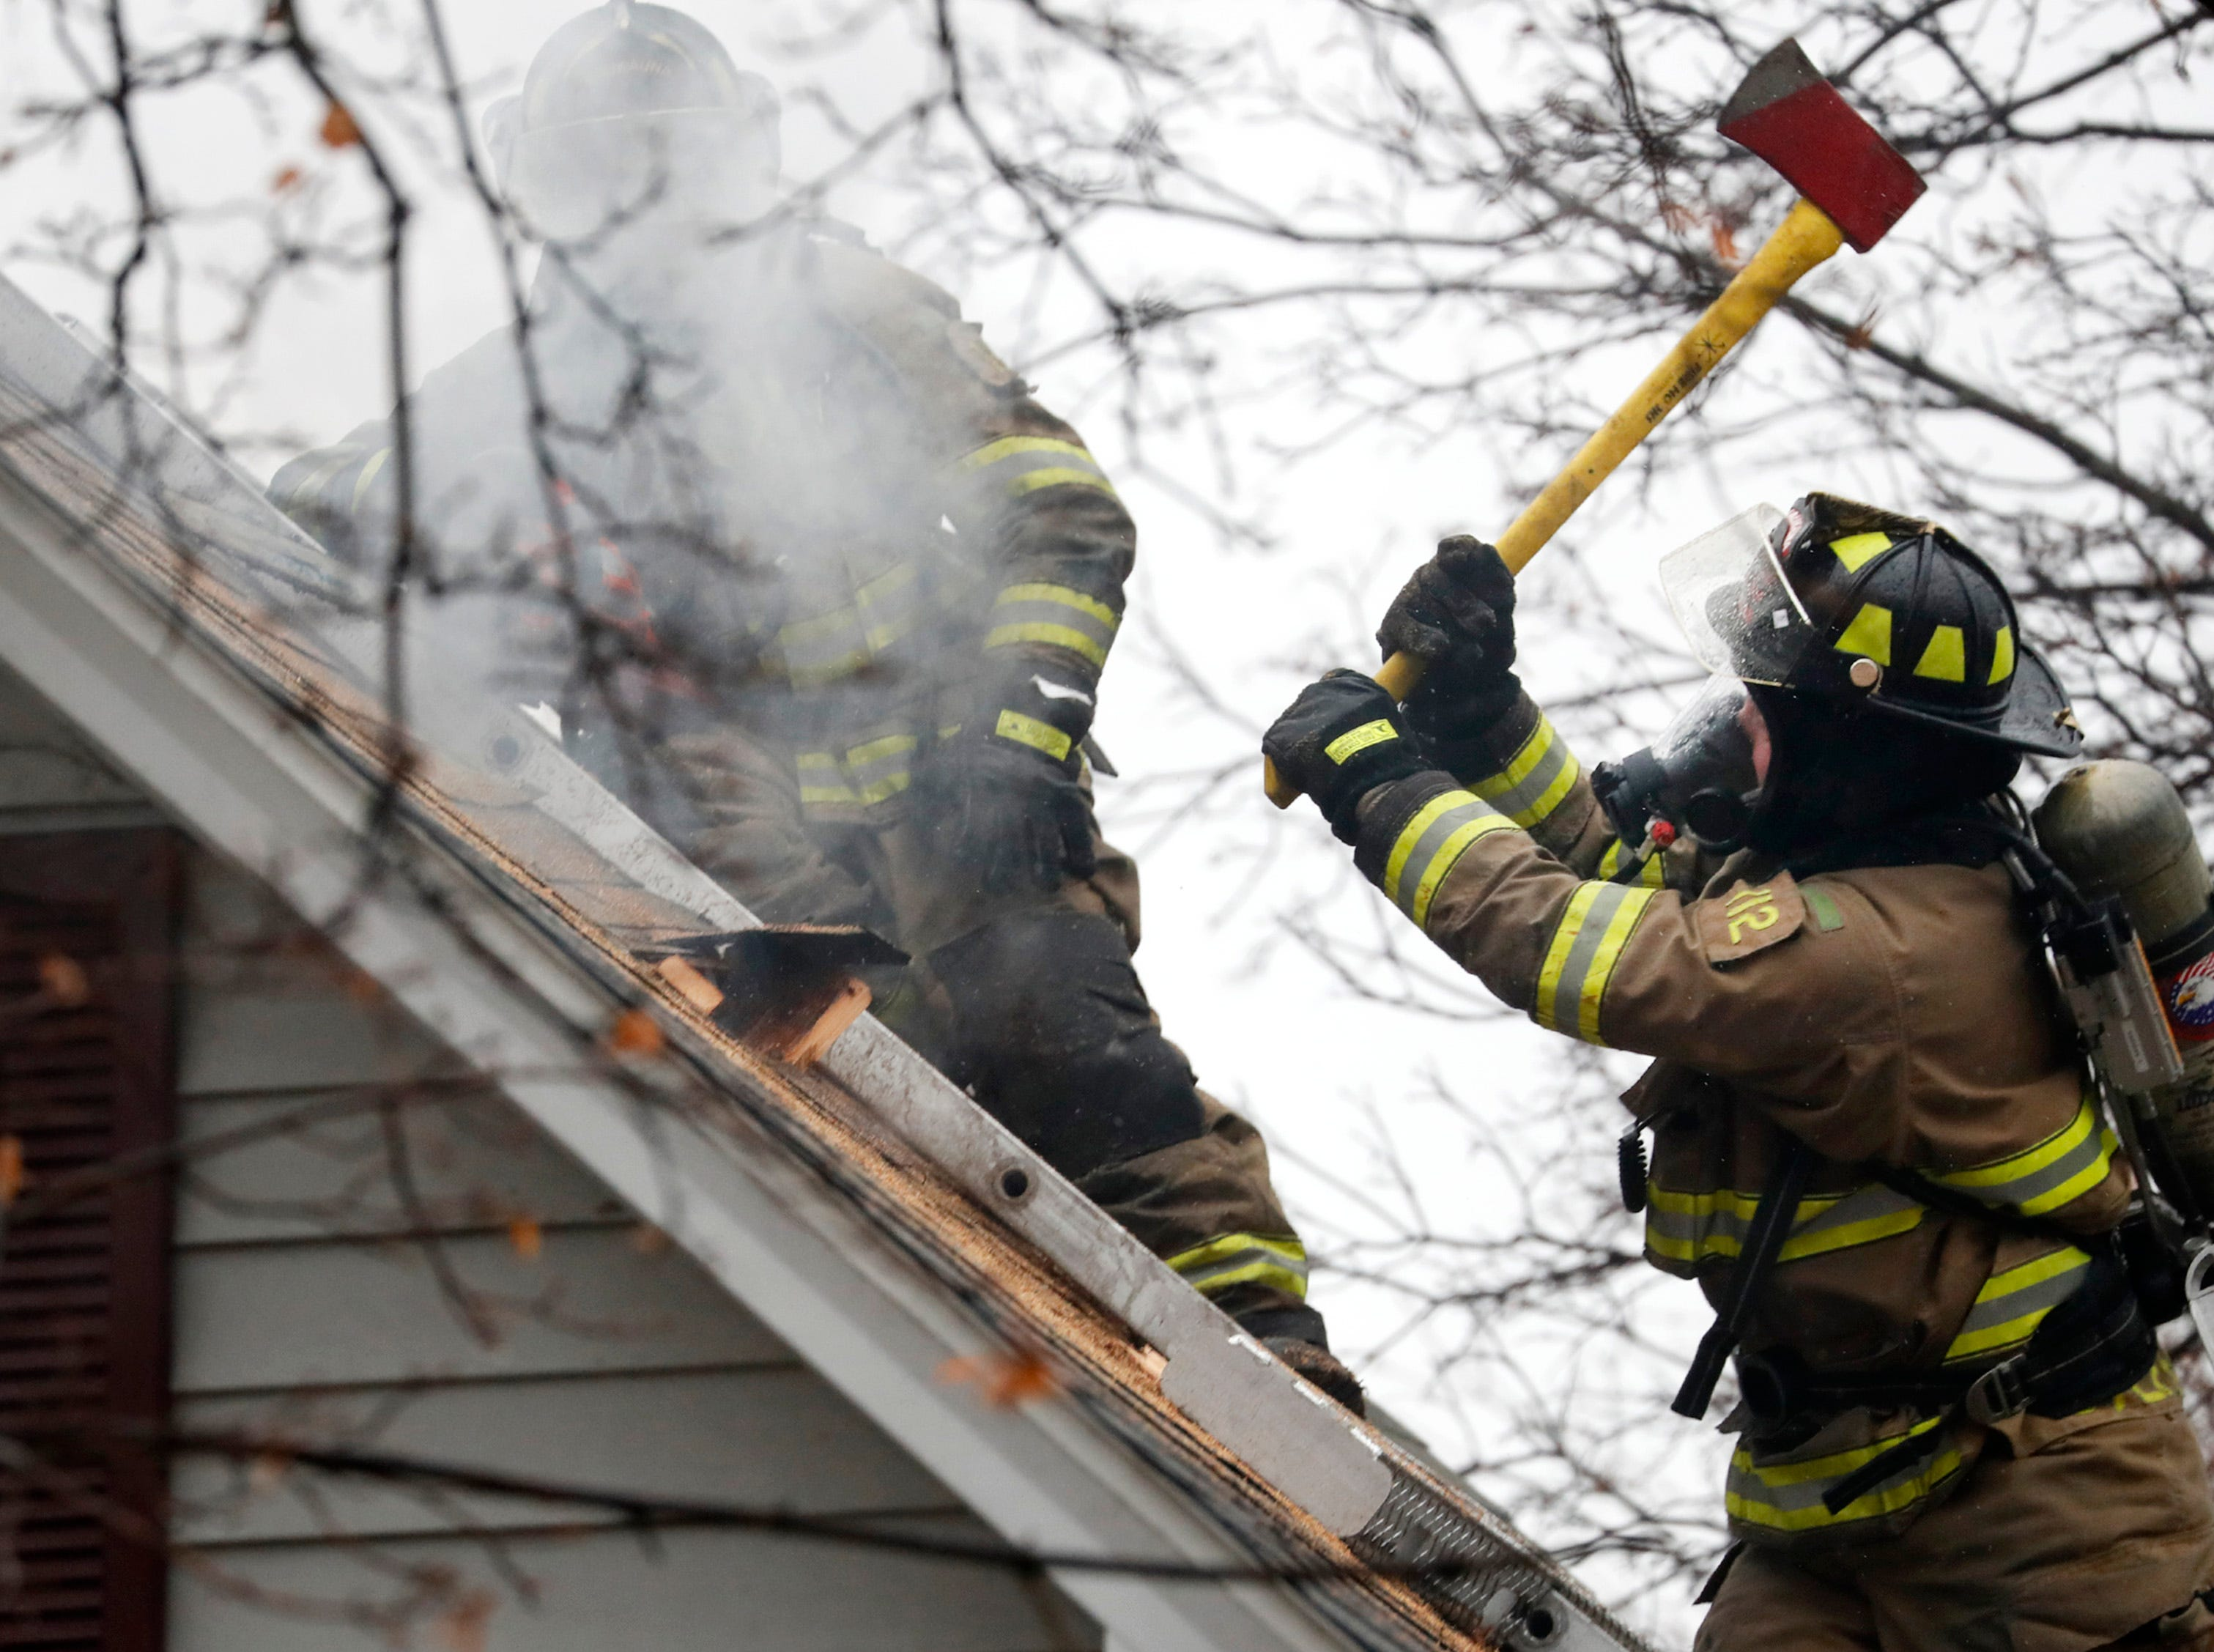 Firefighters work to make a hole in the roof of a building while putting out a structure fire on West 10th Street Thursday, Dec. 27, 2018, Kaukauna, Wis.